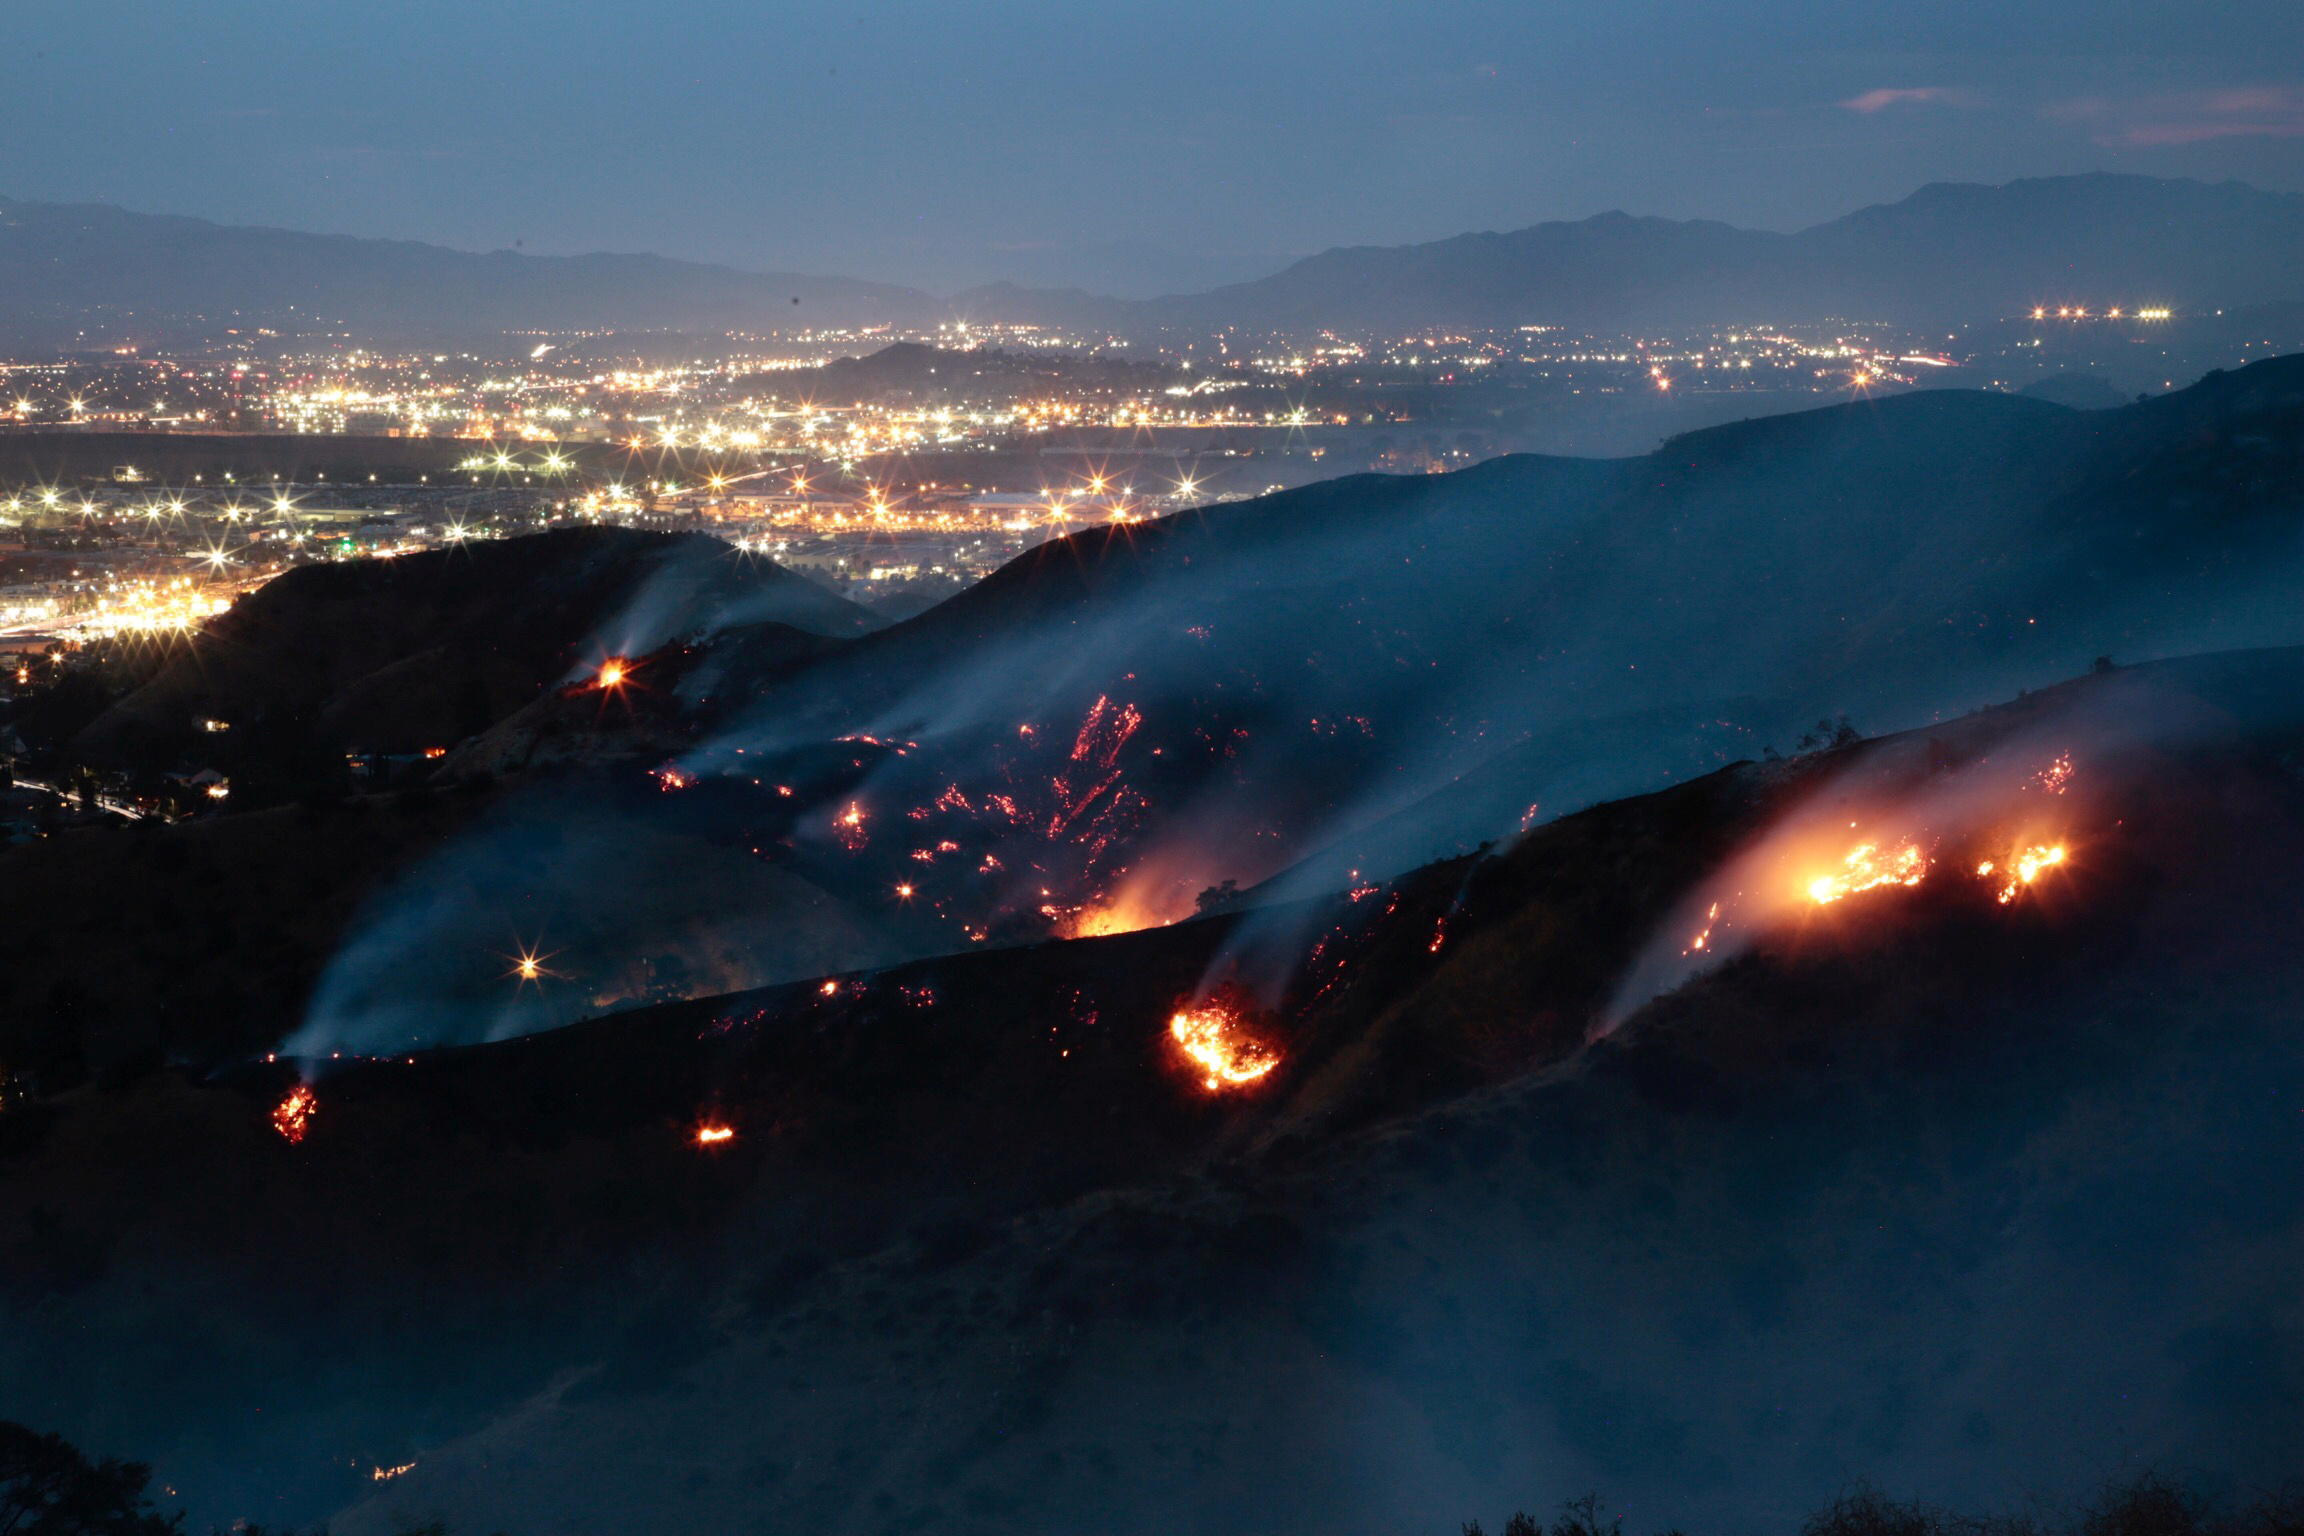 The La Tuna Canyon fire over Burbank. (REUTERS/Kyle Grillot)